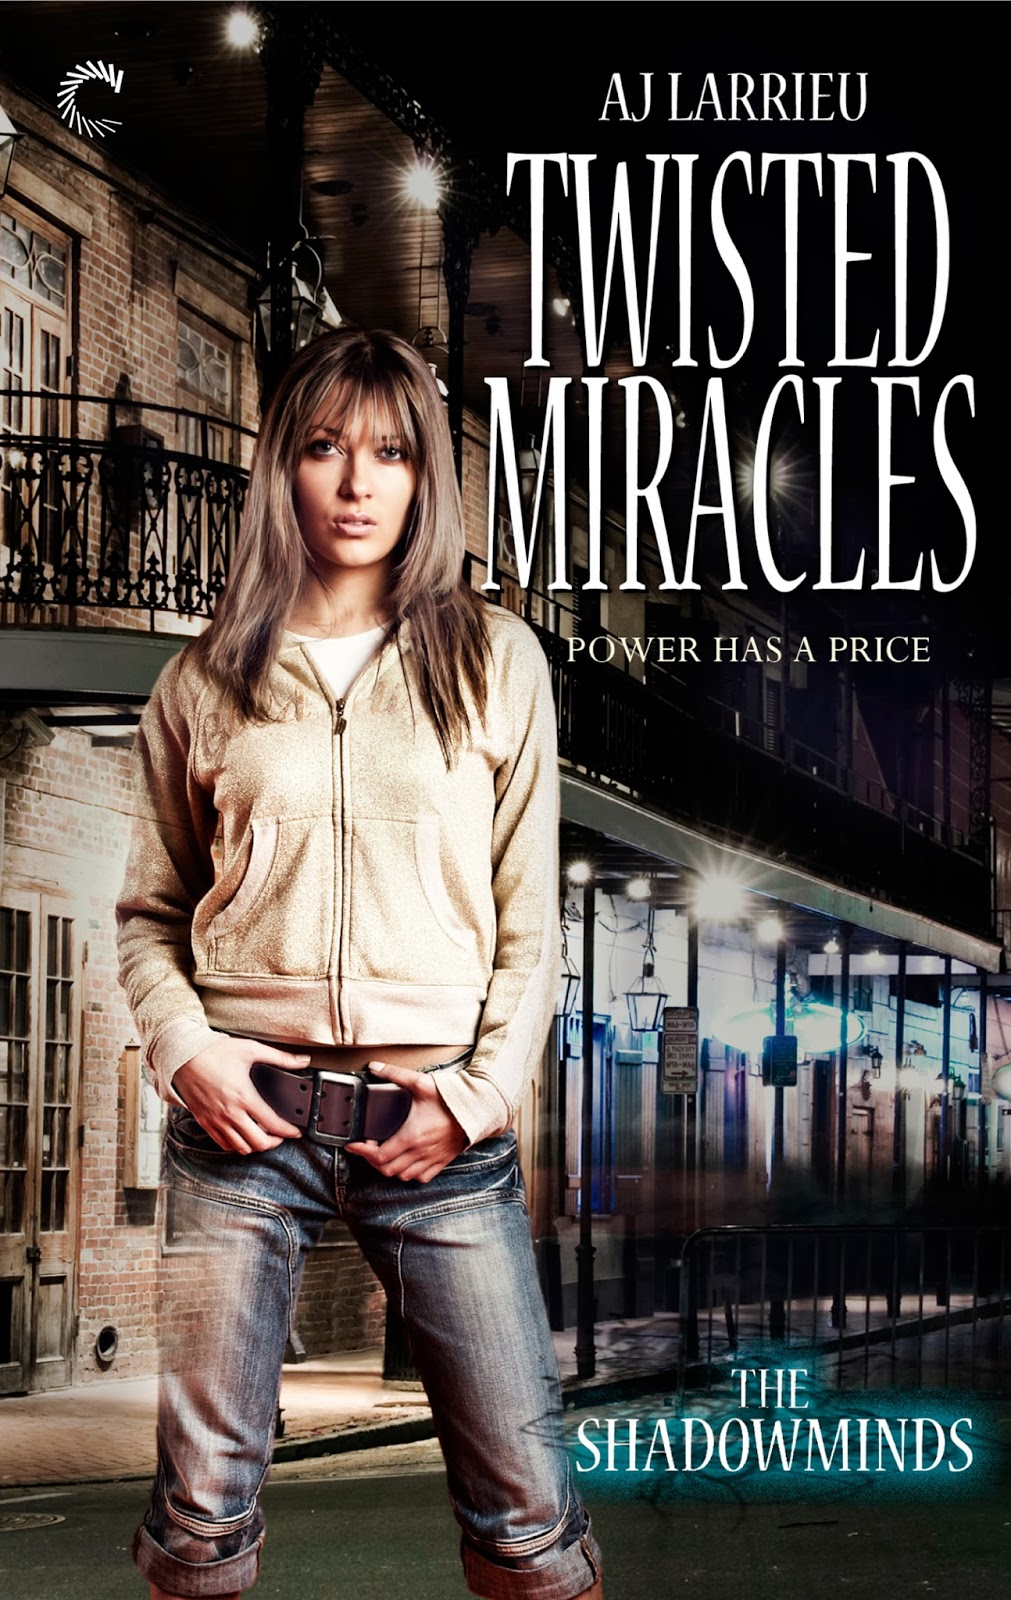 http://ajlarrieu.com/twisted-miracles.php